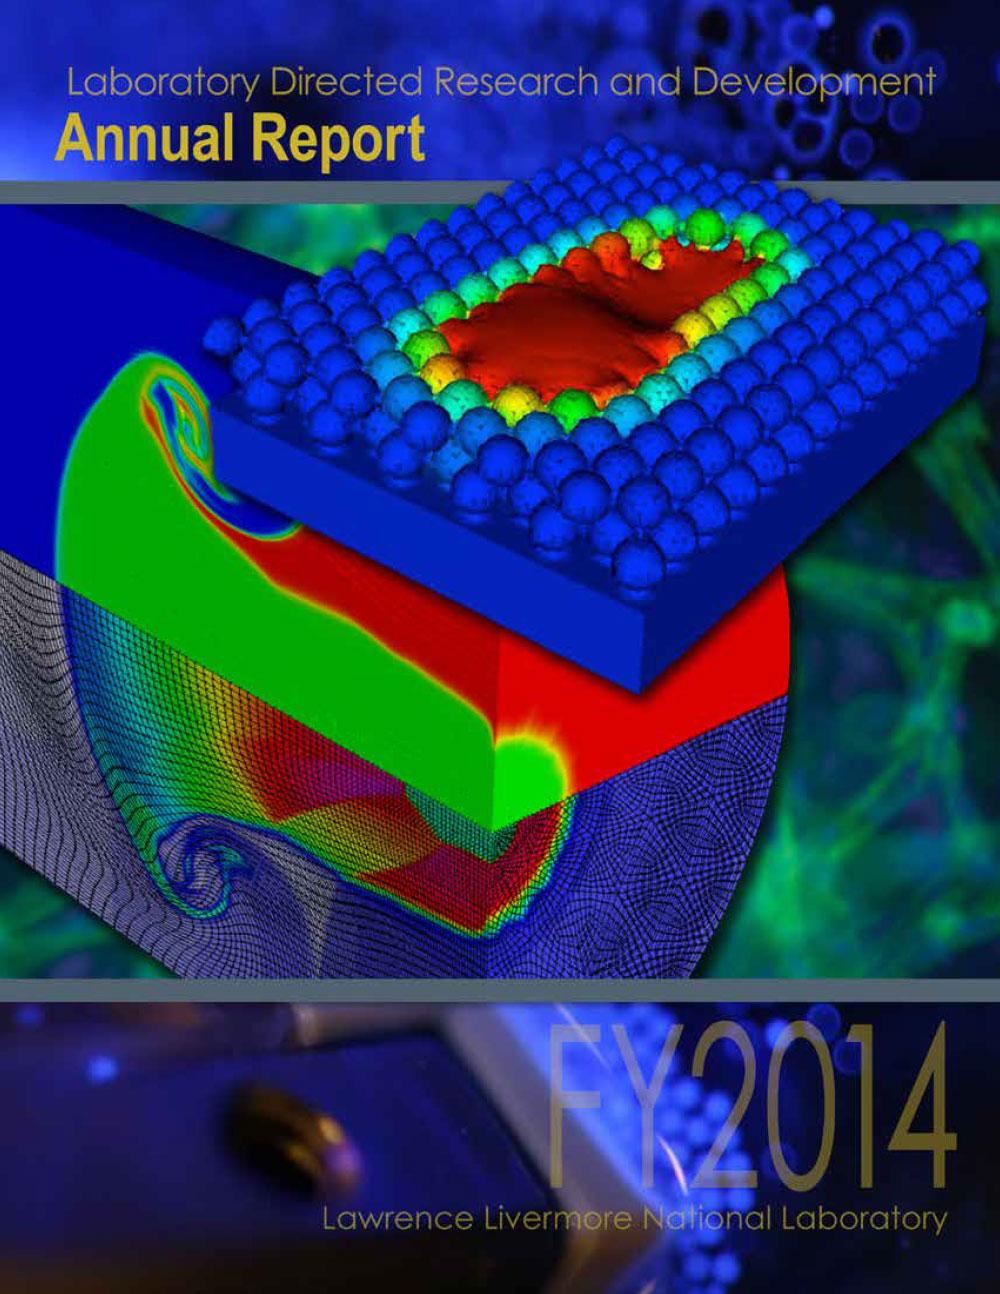 CoverofLLNLFY2014AnnualReport